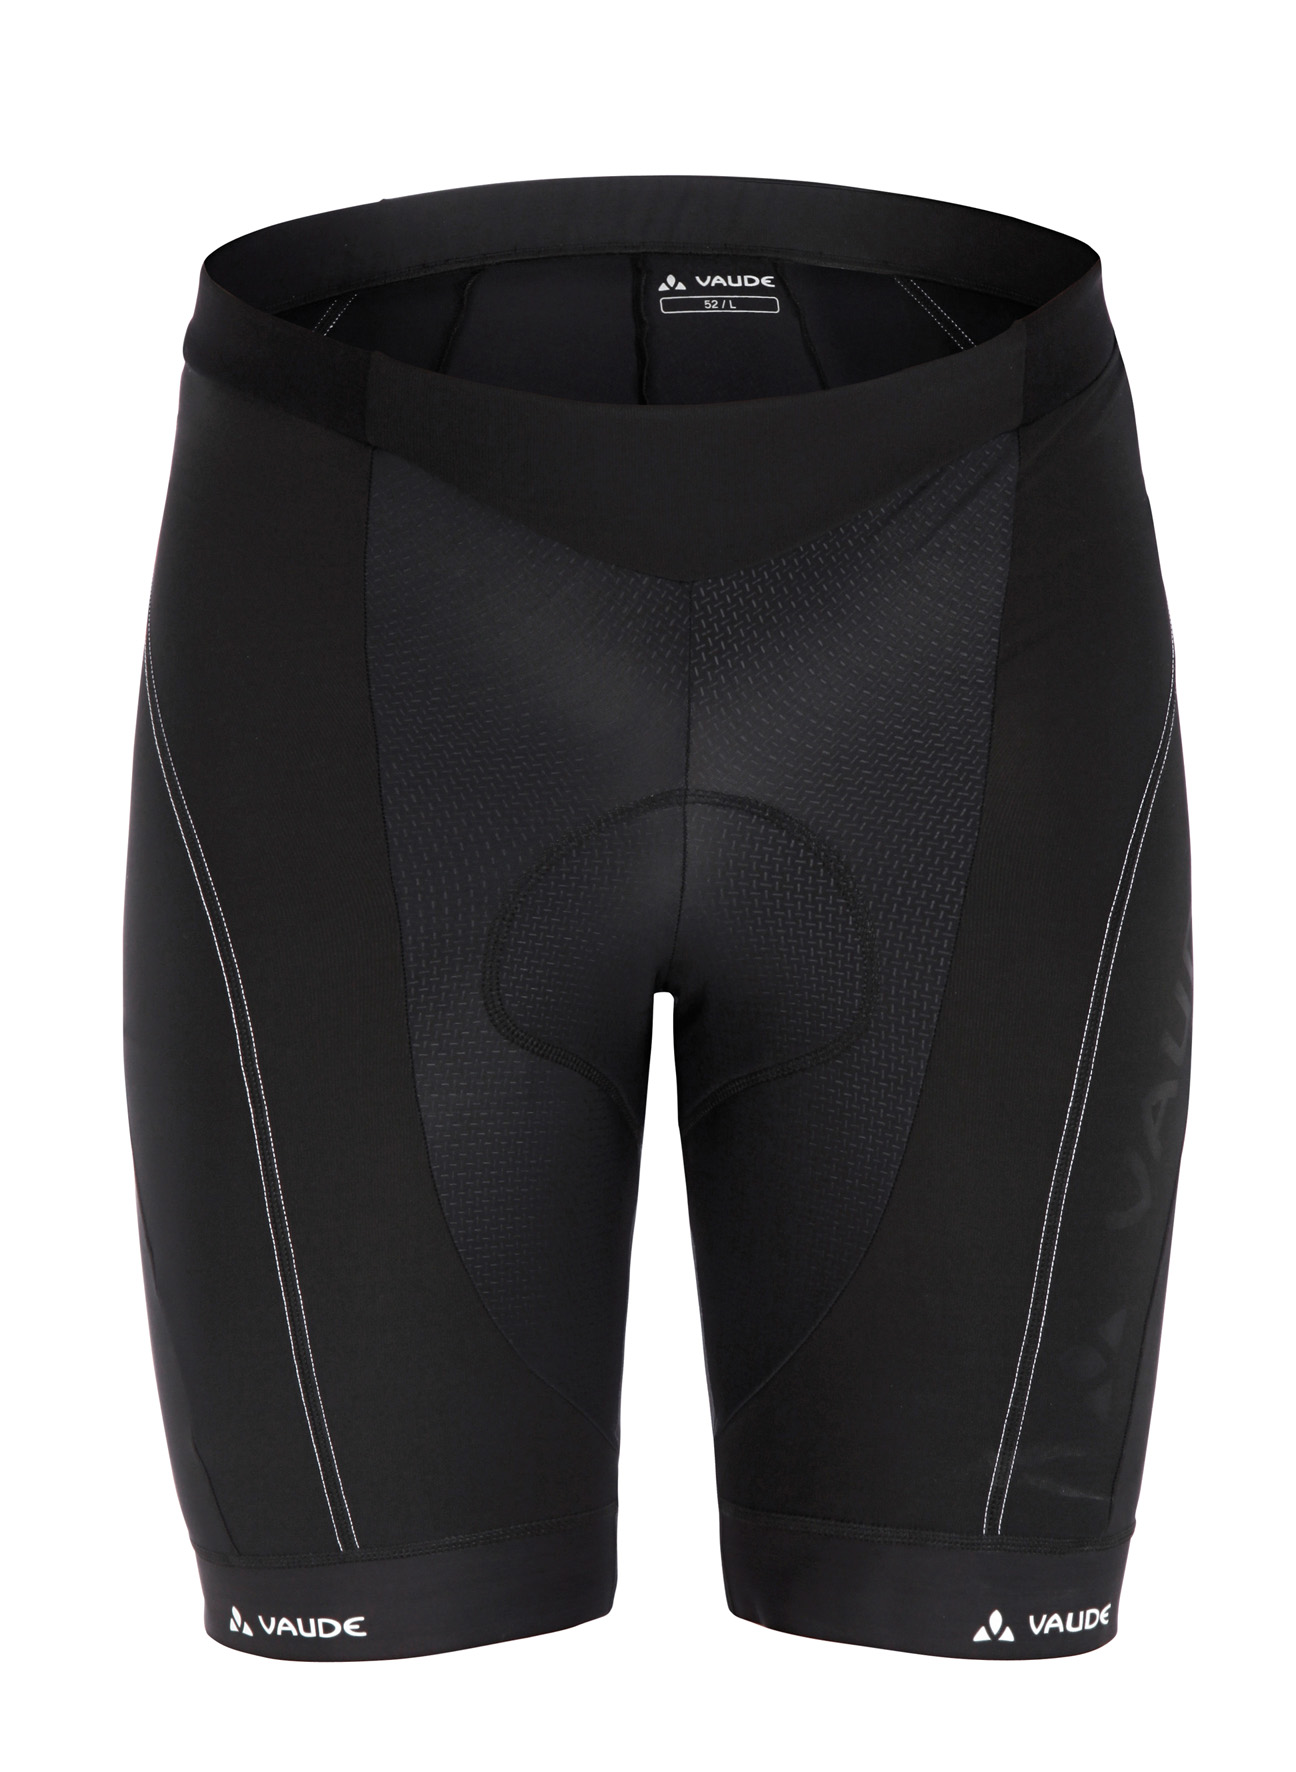 VAUDE Men´s Pro Pants black Größe M - schneider-sports